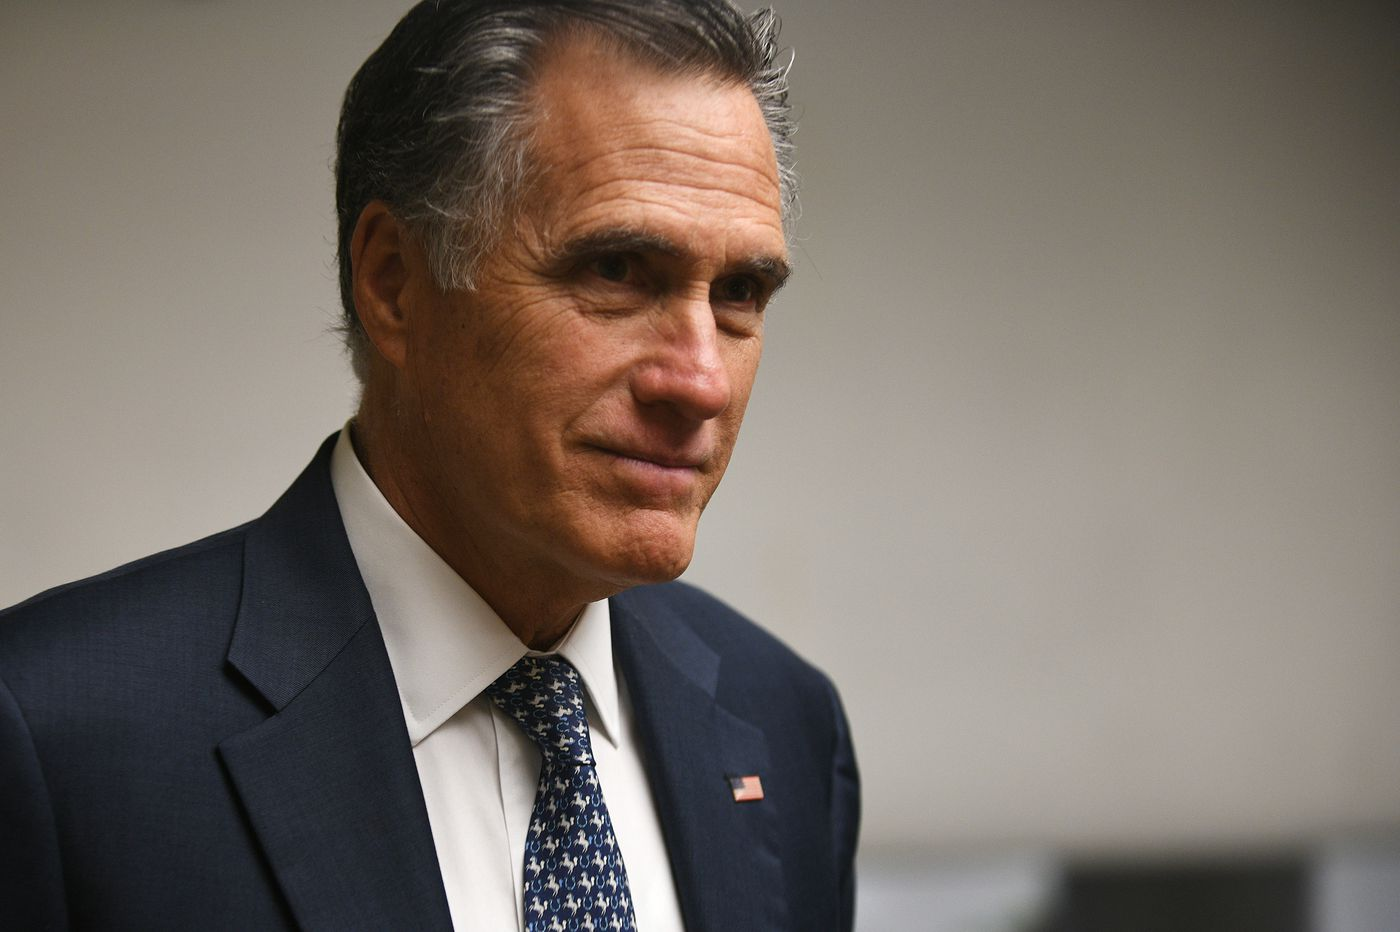 Trump impeachment trial: Romney will vote to convict, final vote expected Wednesday afternoon